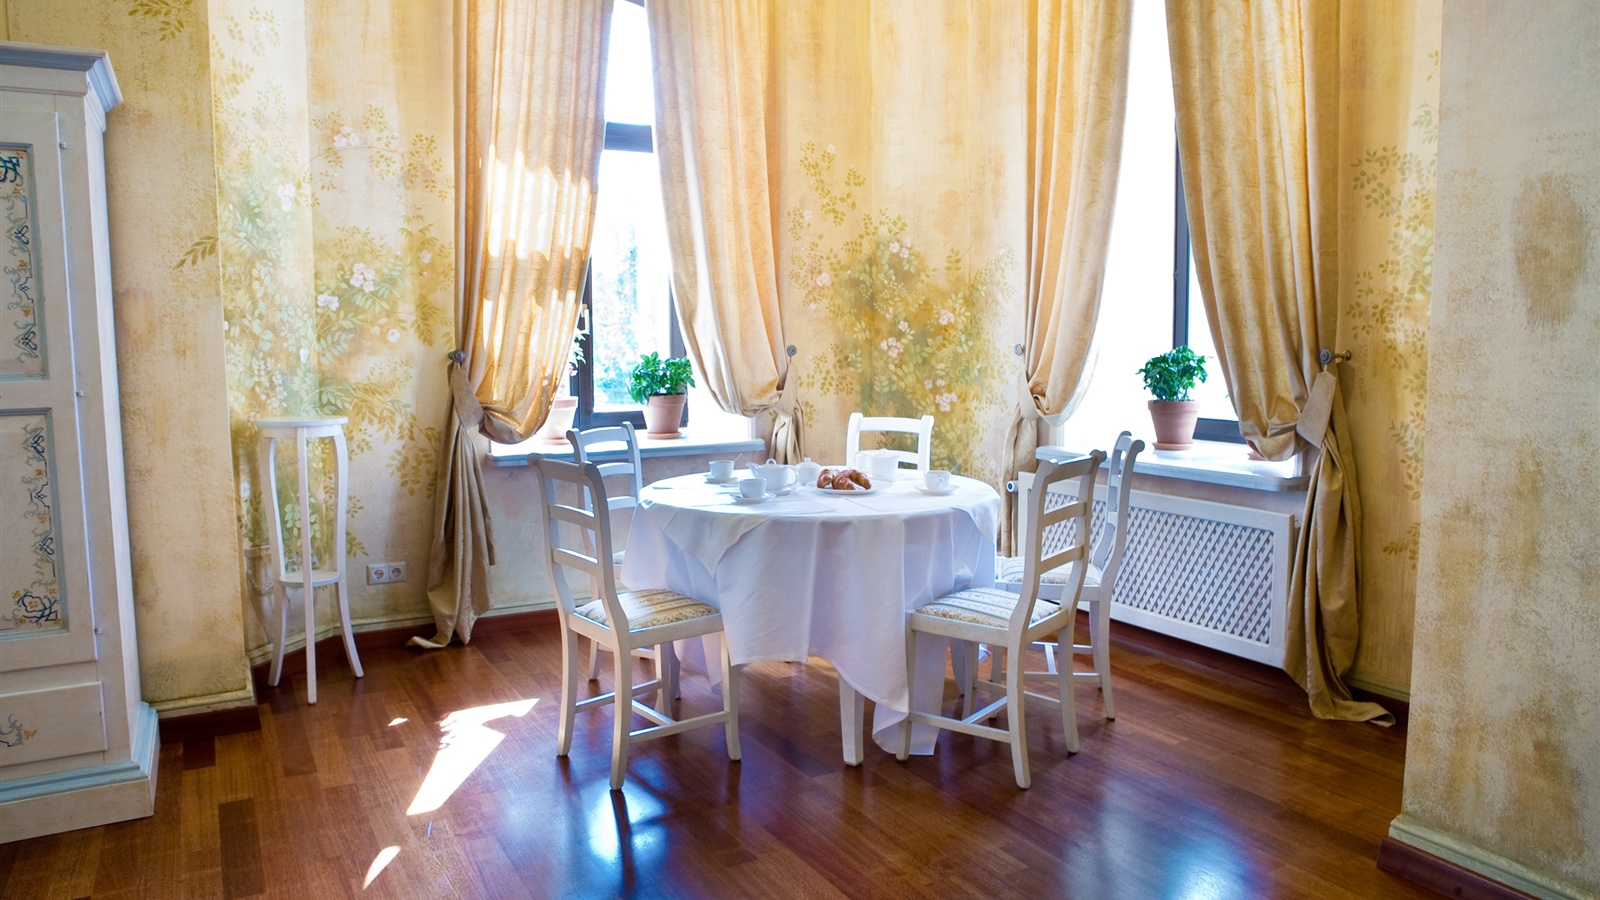 Wallpaper Environment Cozy Dining Room 2560x1600 HD